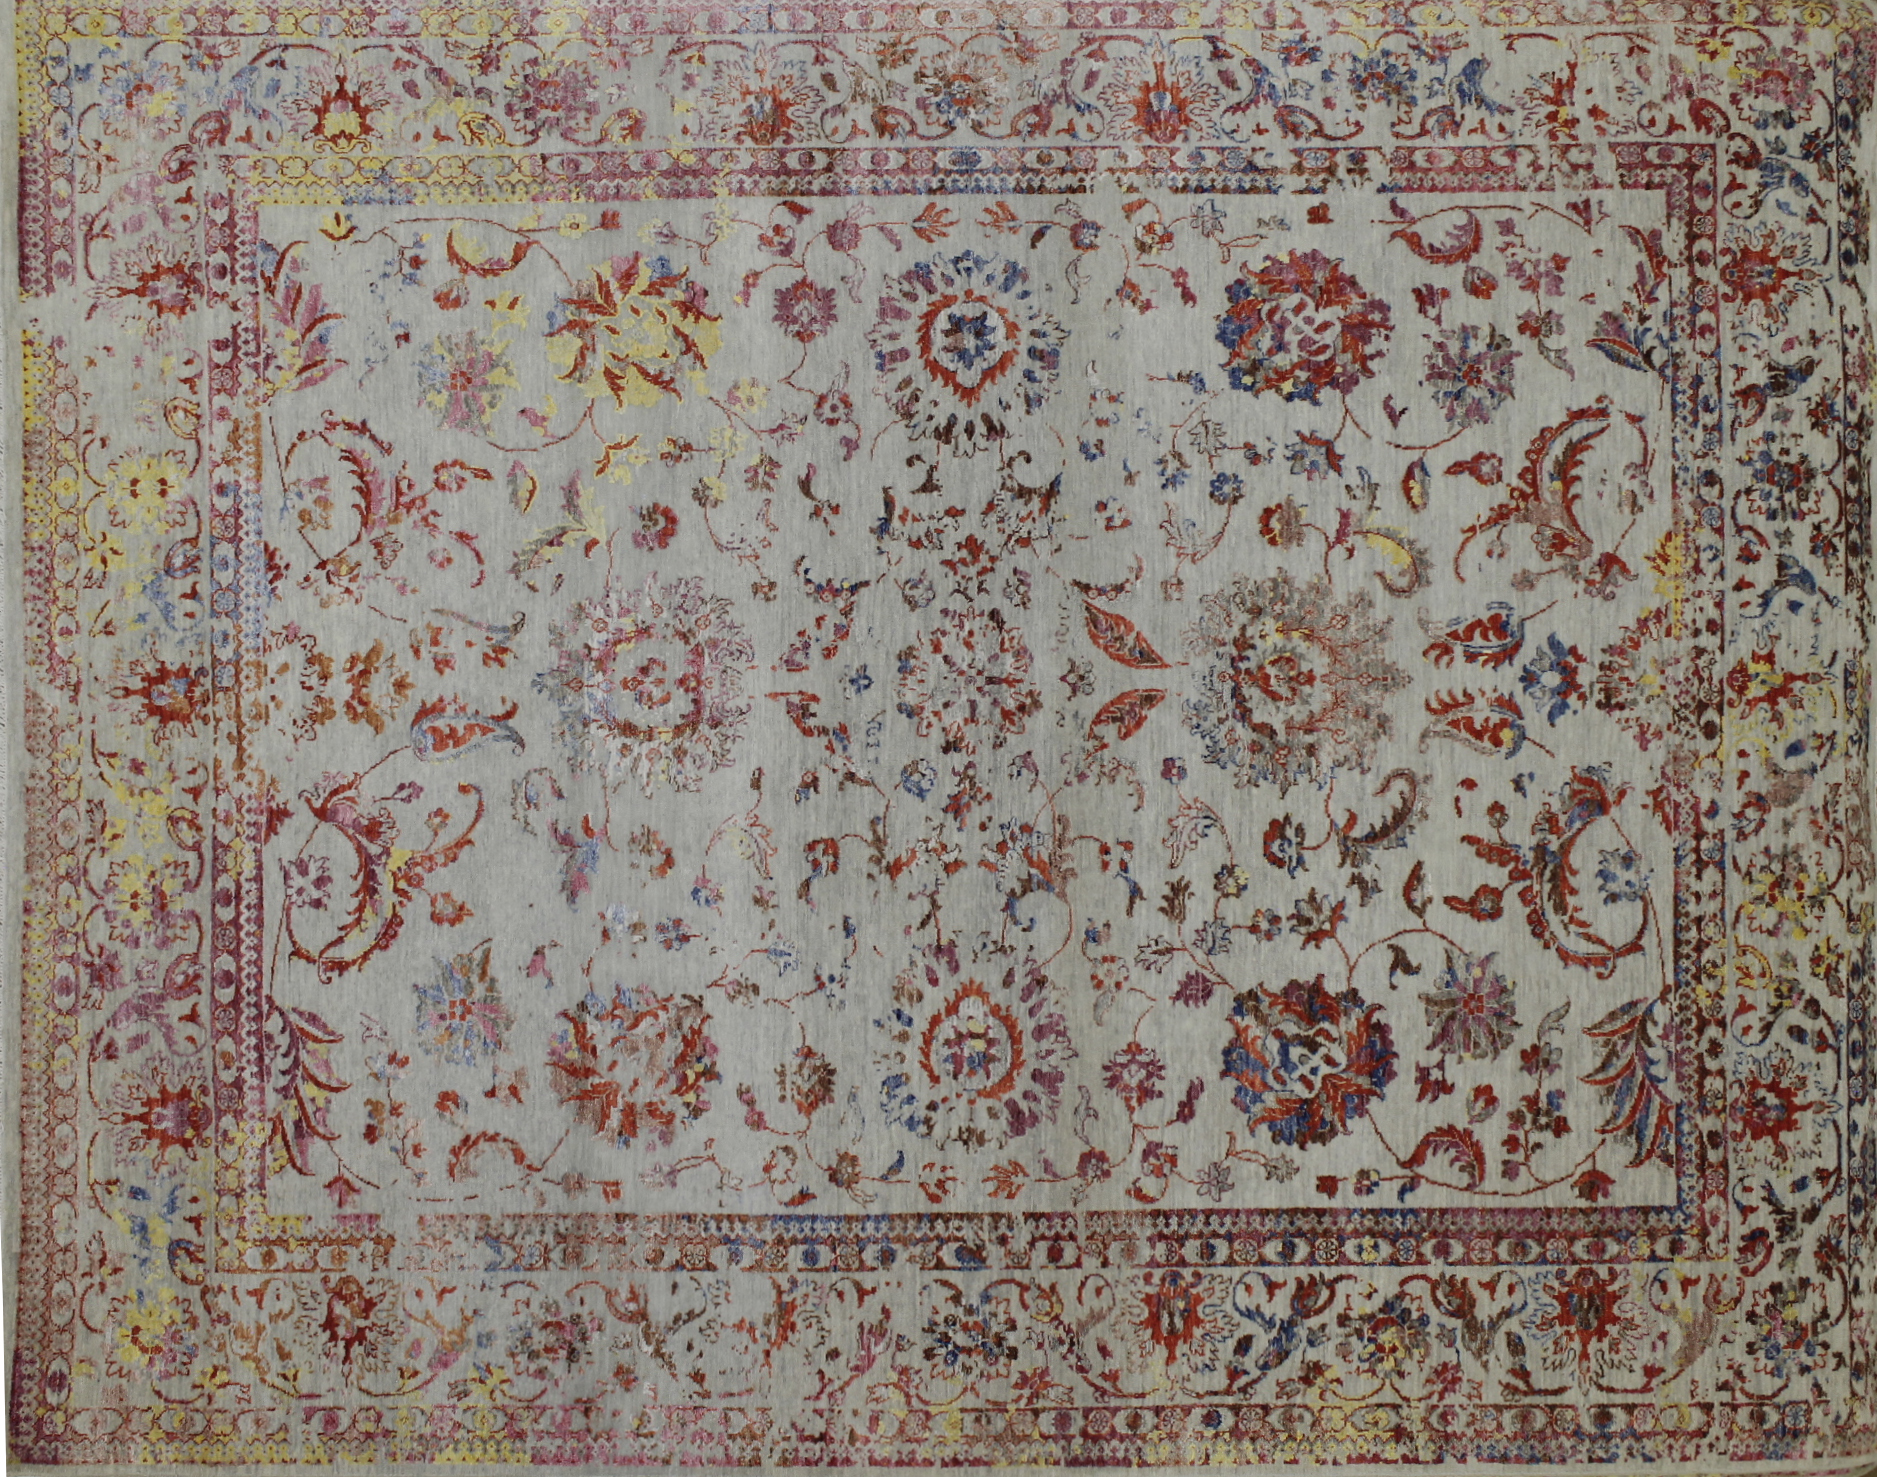 8x10 Contemporary Hand Knotted Wool Area Rug - MR022391